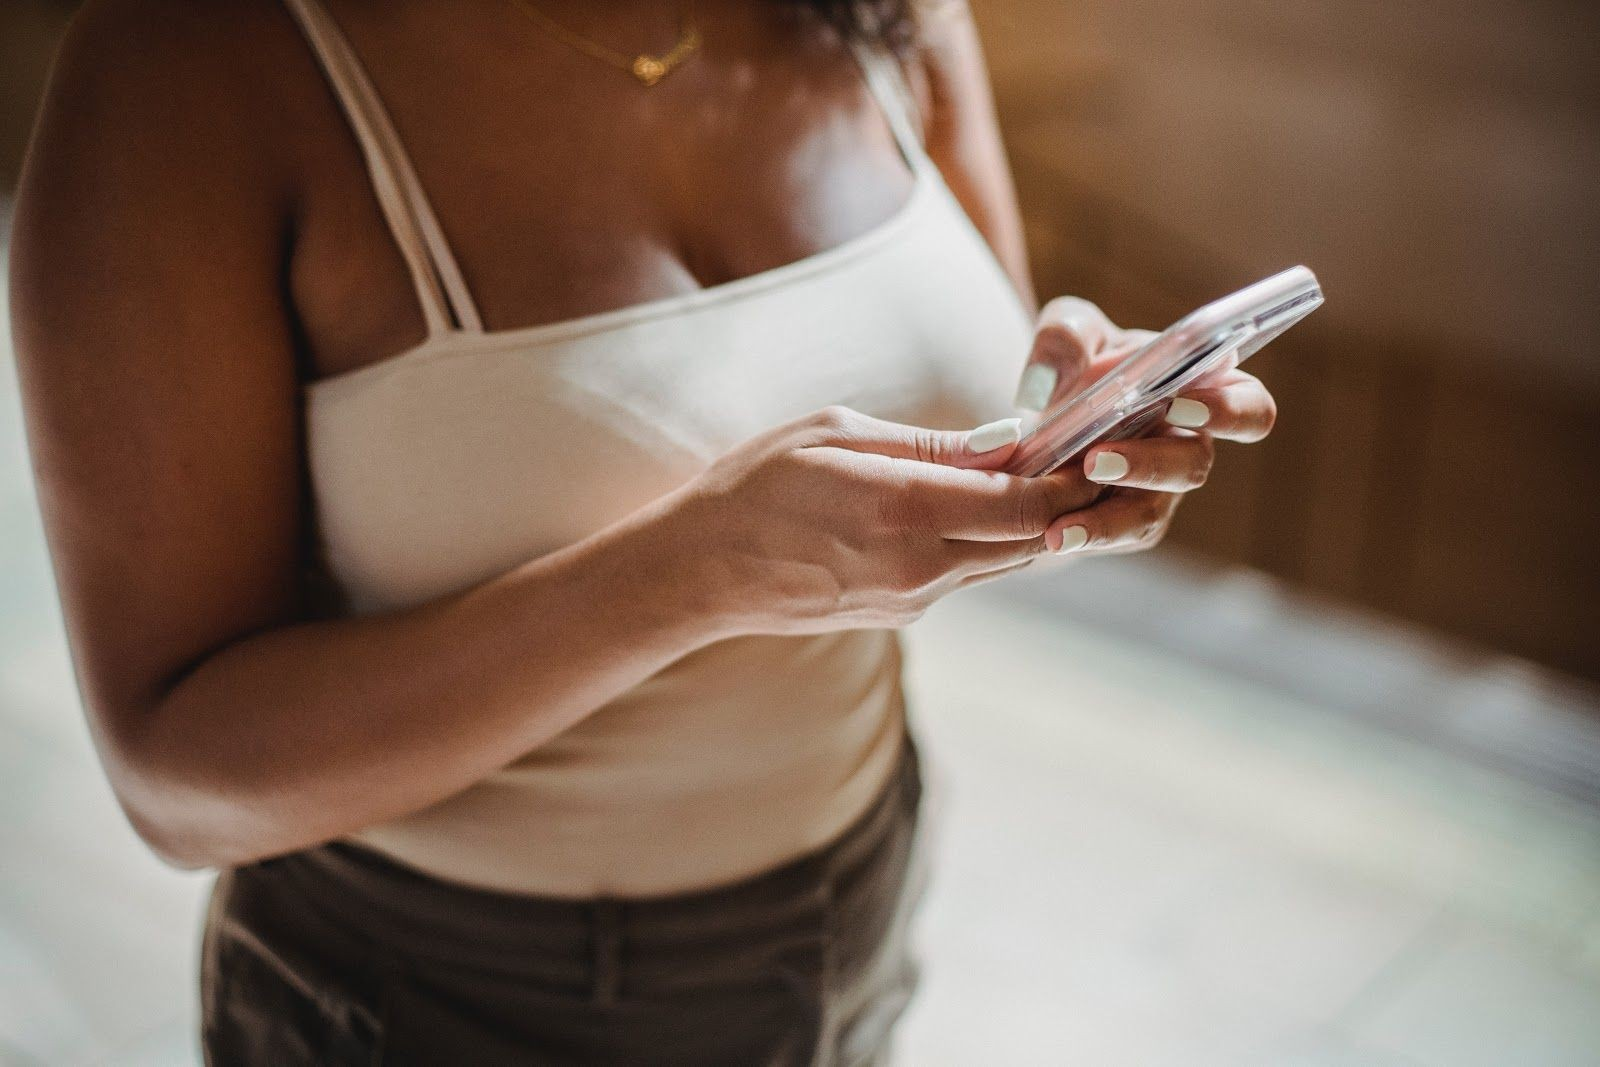 5 TIPS TO SPICE UP YOUR ONLINE DATING